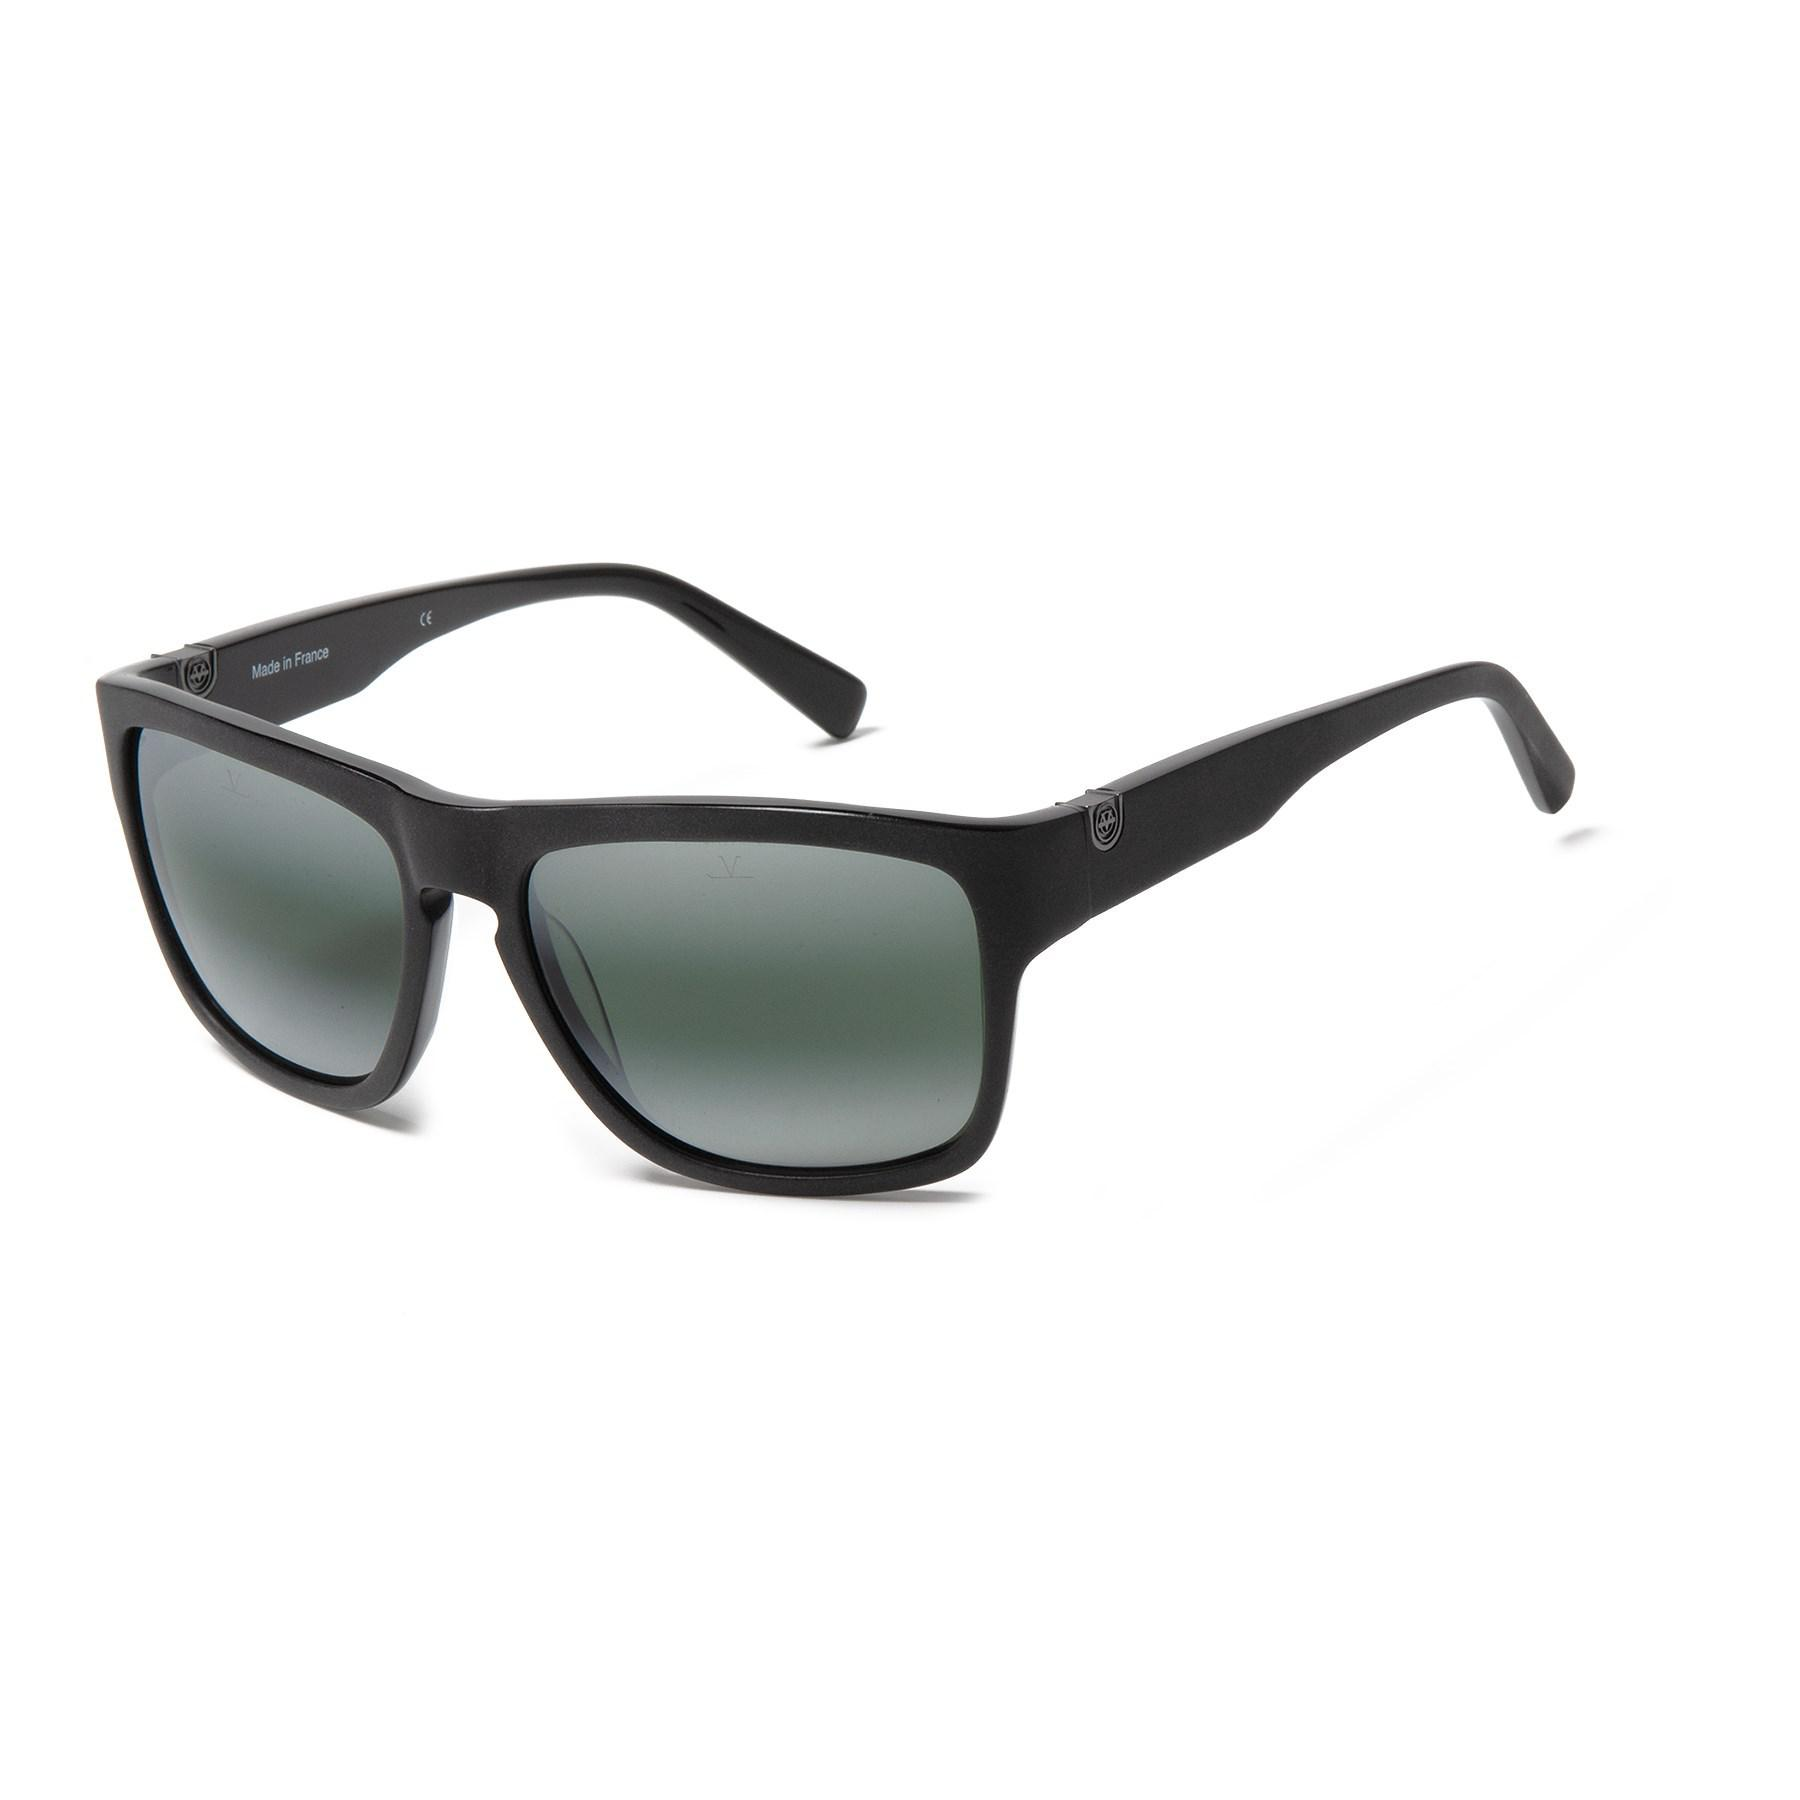 dd3efdef947 Lyst - Vuarnet Vl 1409 Sunglasses (for Men And Women) in Black for Men